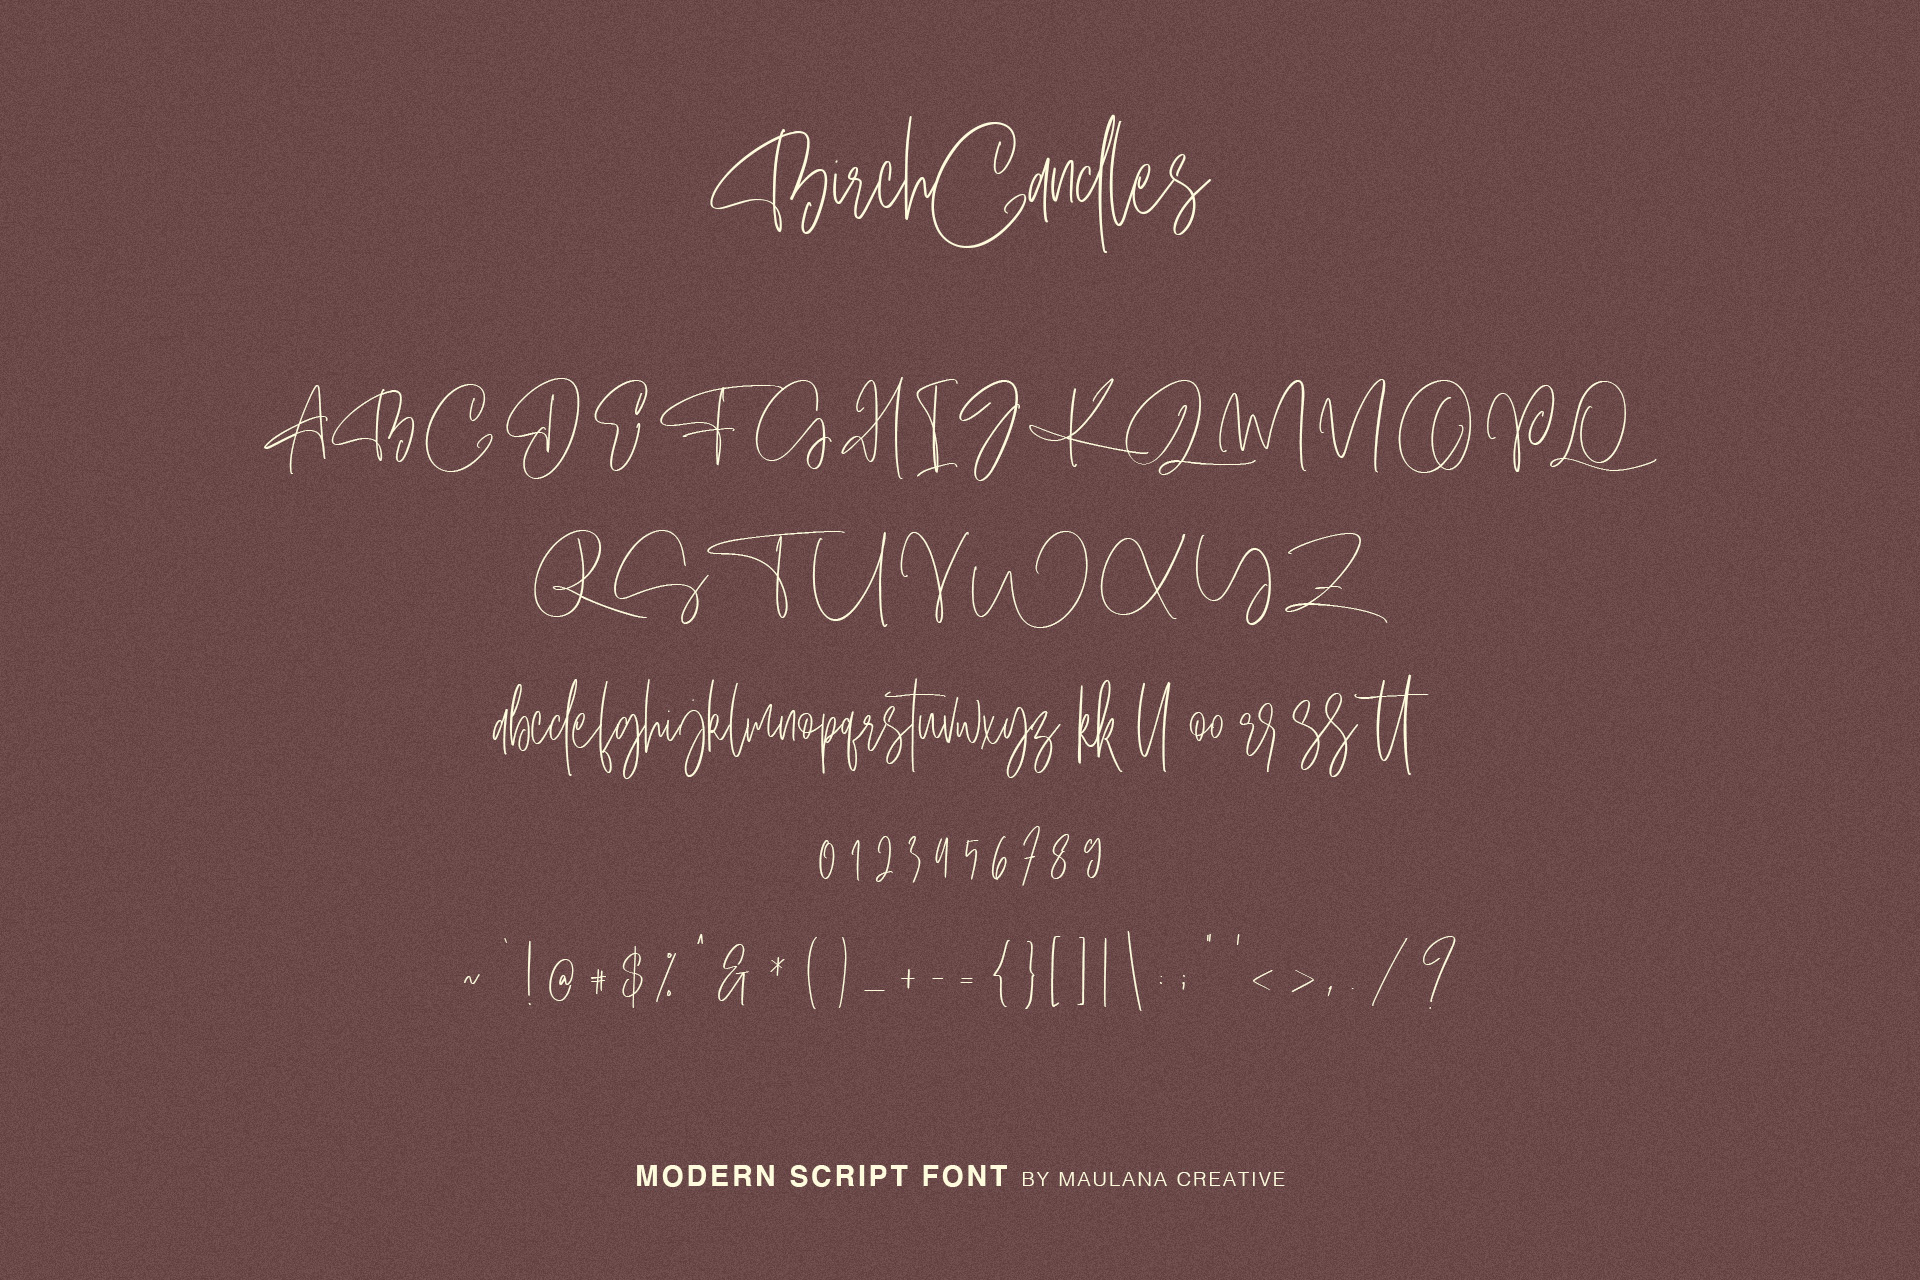 Birch Candles - Handwritten Font example image 8